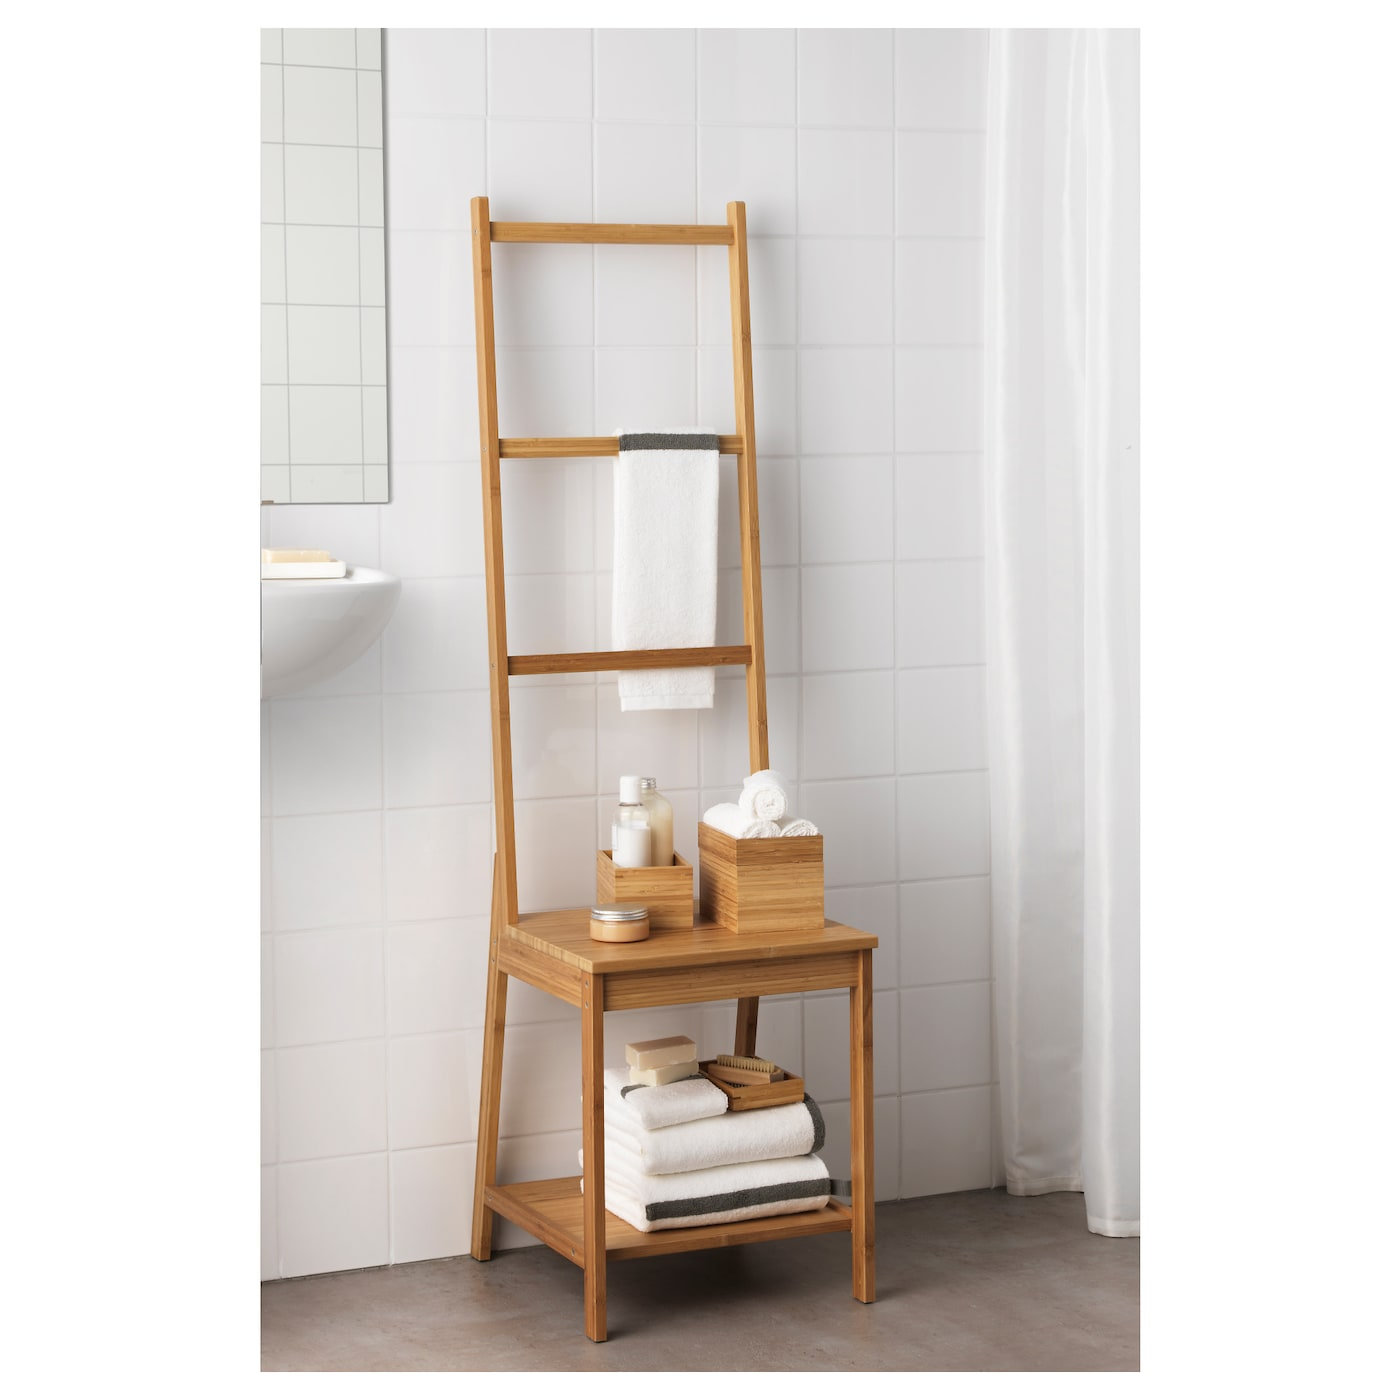 r grund towel rack chair bamboo ikea. Black Bedroom Furniture Sets. Home Design Ideas